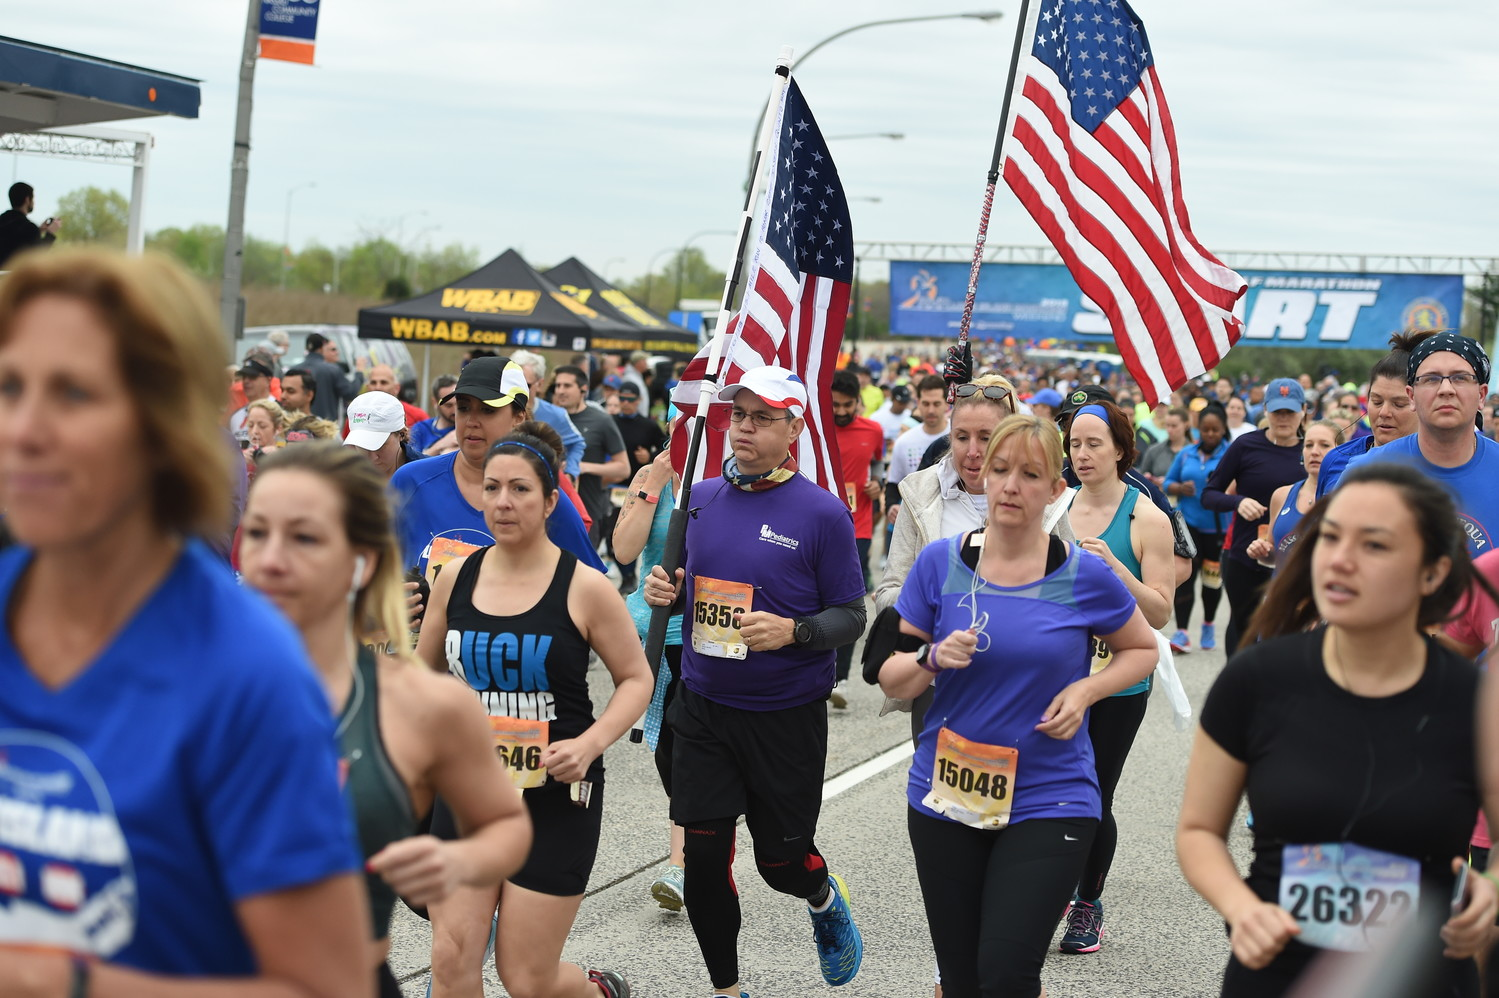 At this year's Long Island Marathon, runners took off from Charles Lindbergh Boulevard, near Nassau Coliseum. Next year's marathon will start at the Merrick Avenue entrance to Eisenhower Park.